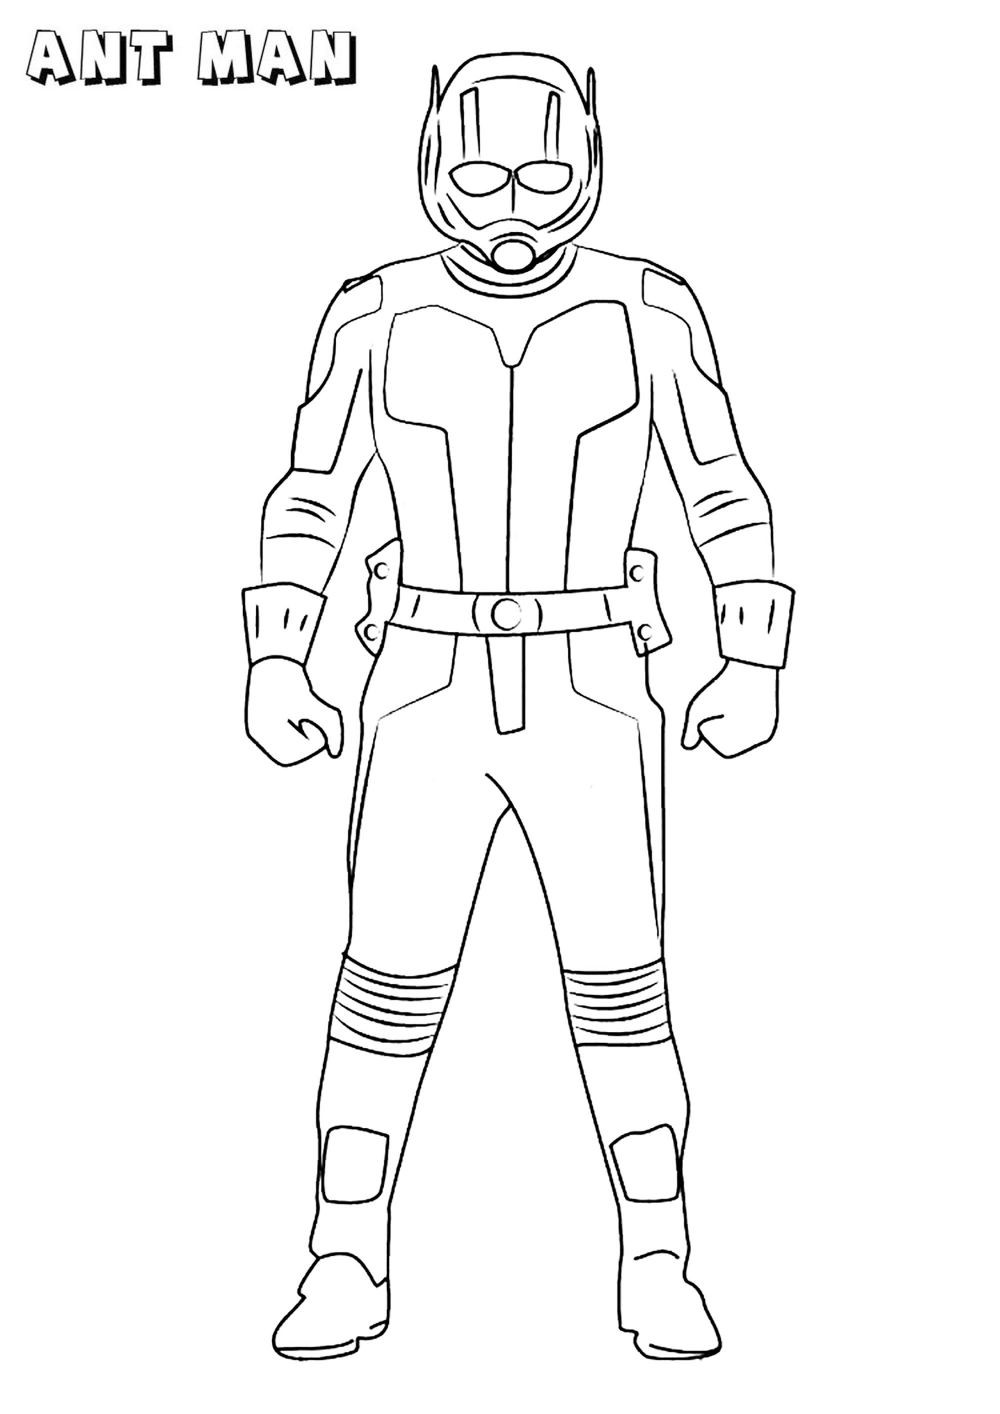 Ant Man Ant Man Kids Coloring Pages In 2020 Avengers Coloring Pages Avengers Coloring Ant Man